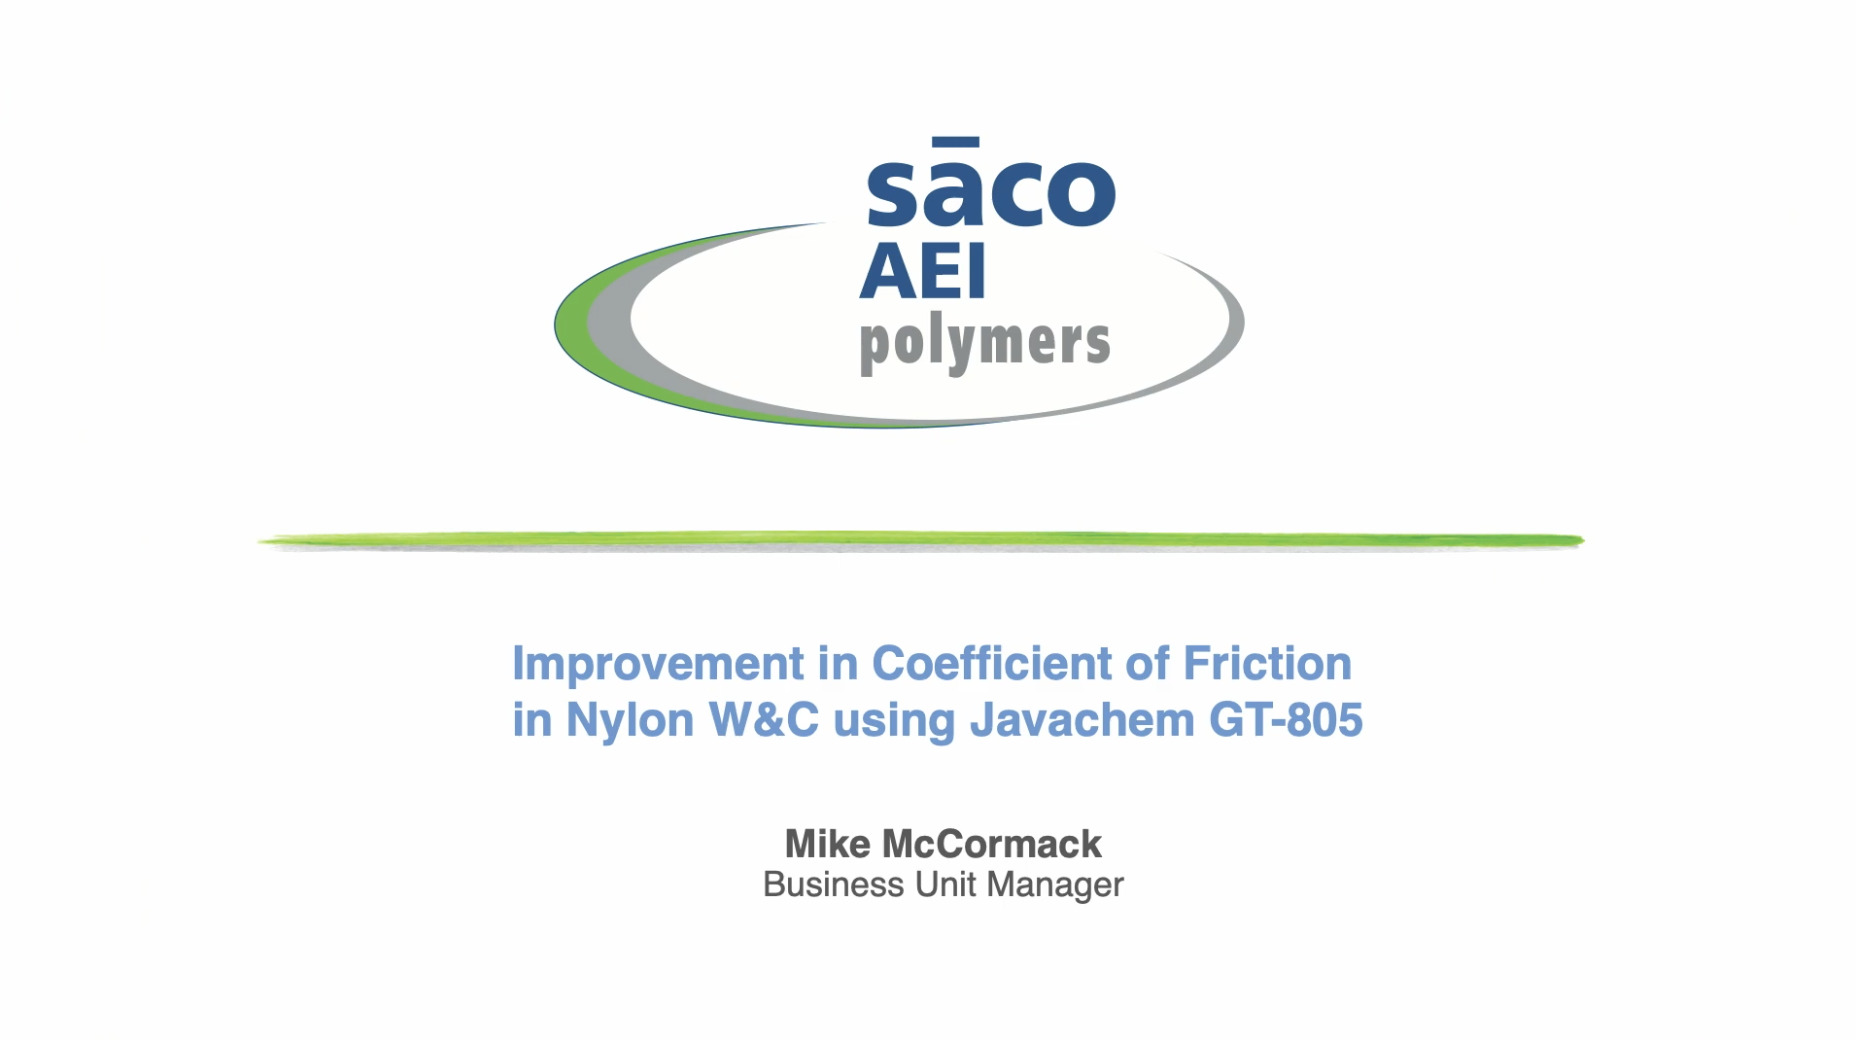 Improvement in Coefficient of Friction and Nylon W and C